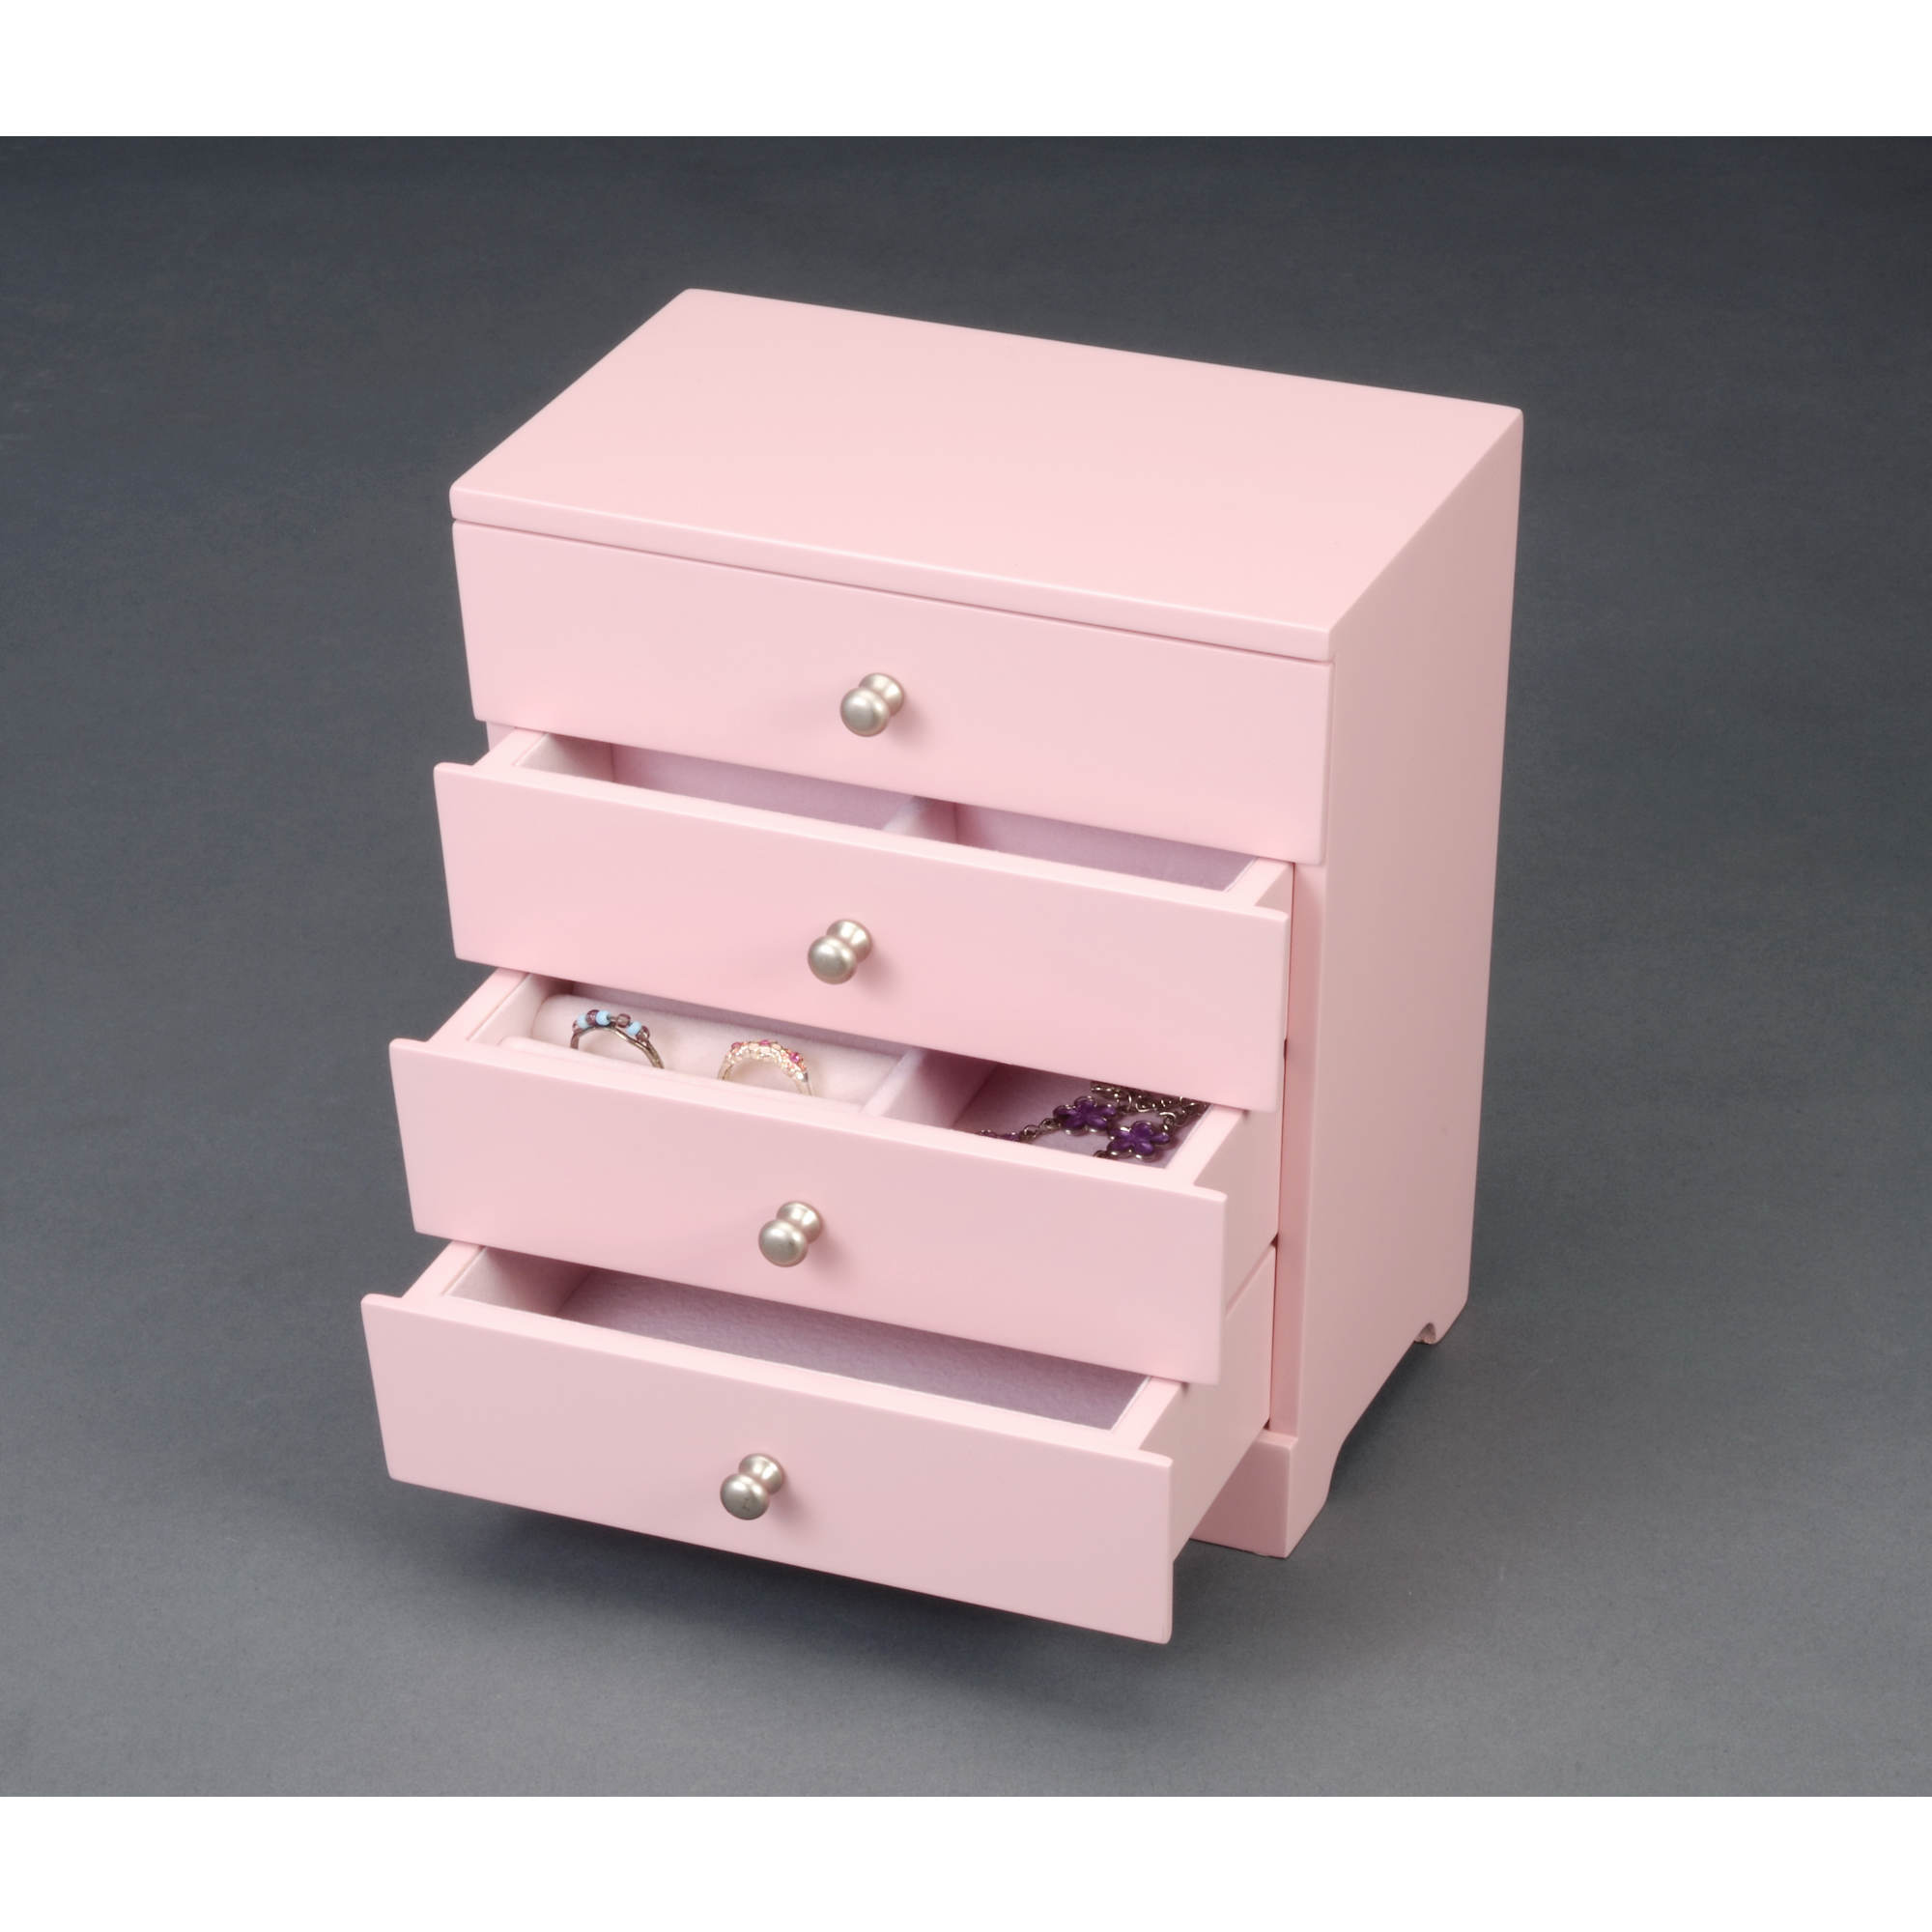 HomePointe Teen Wooden Jewelry Box - Pink